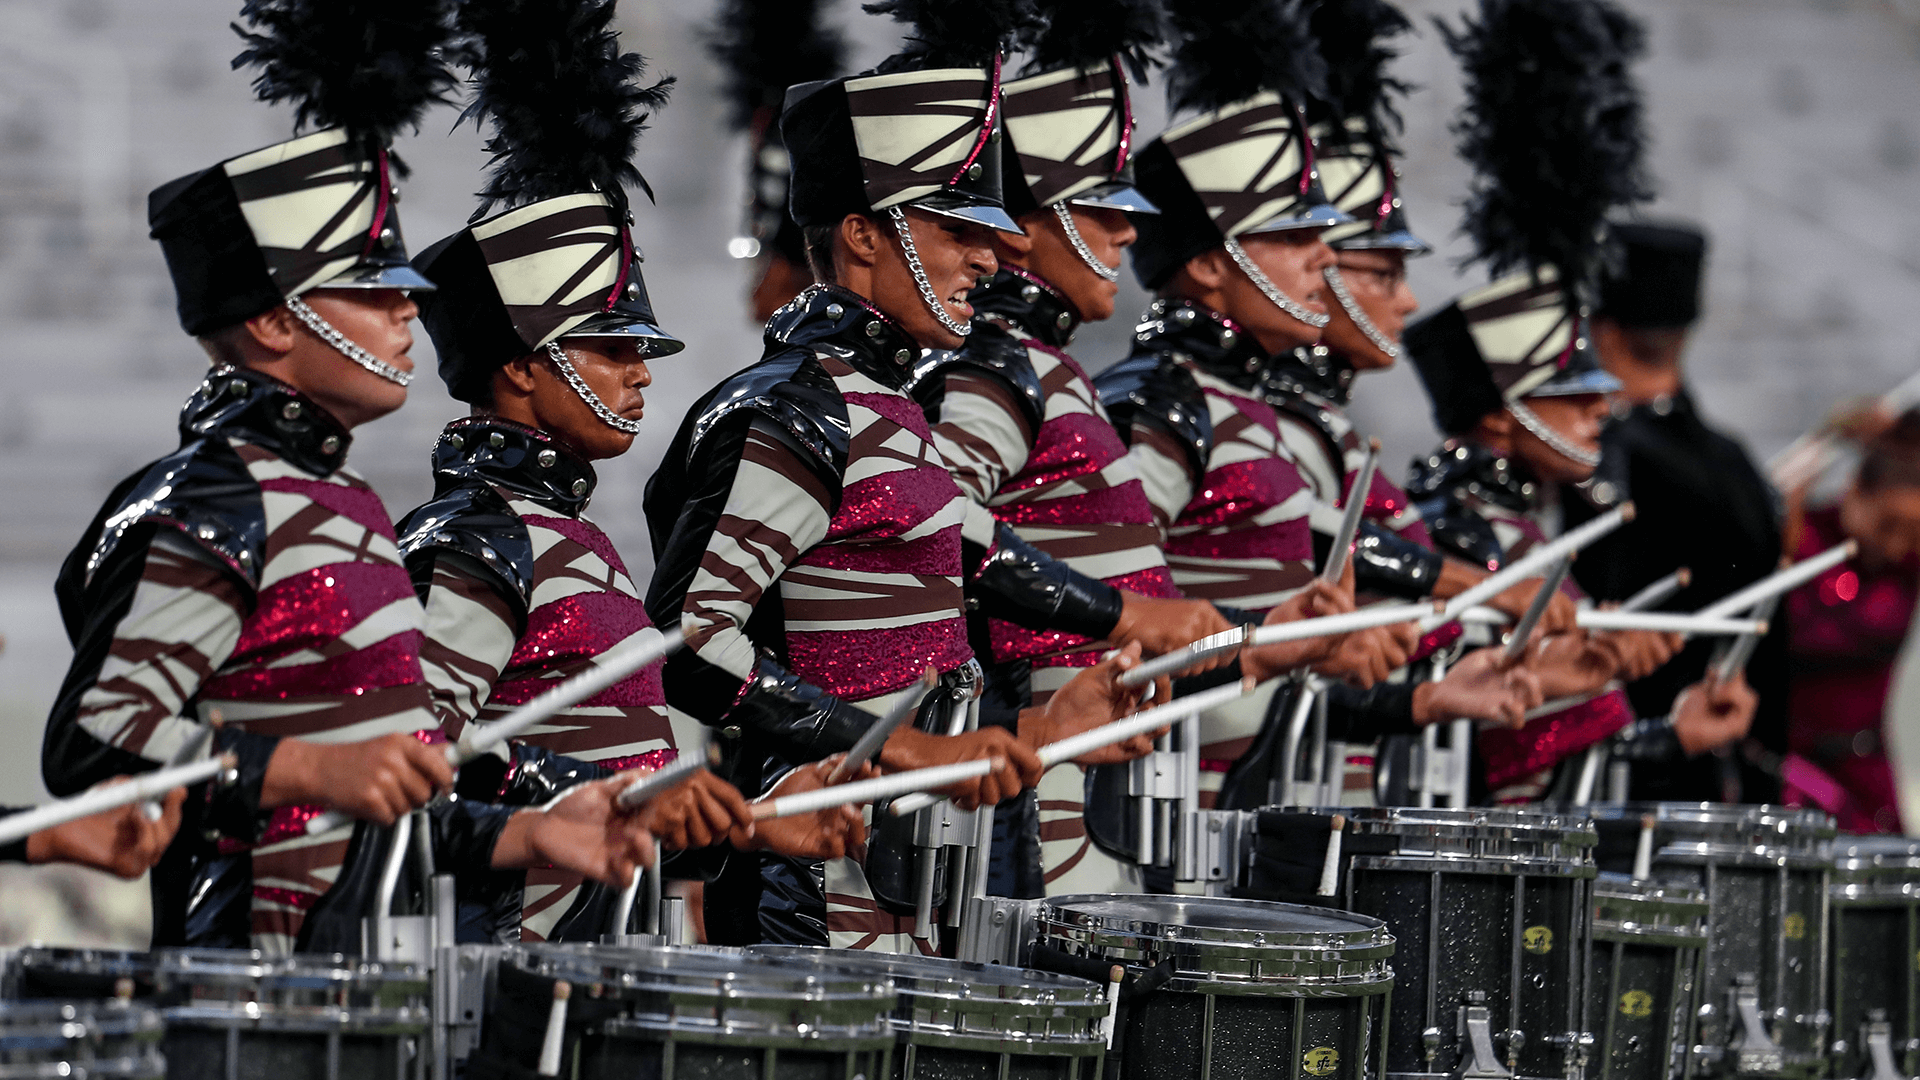 Drum Corps: An American Tradition - MetLife Stadium